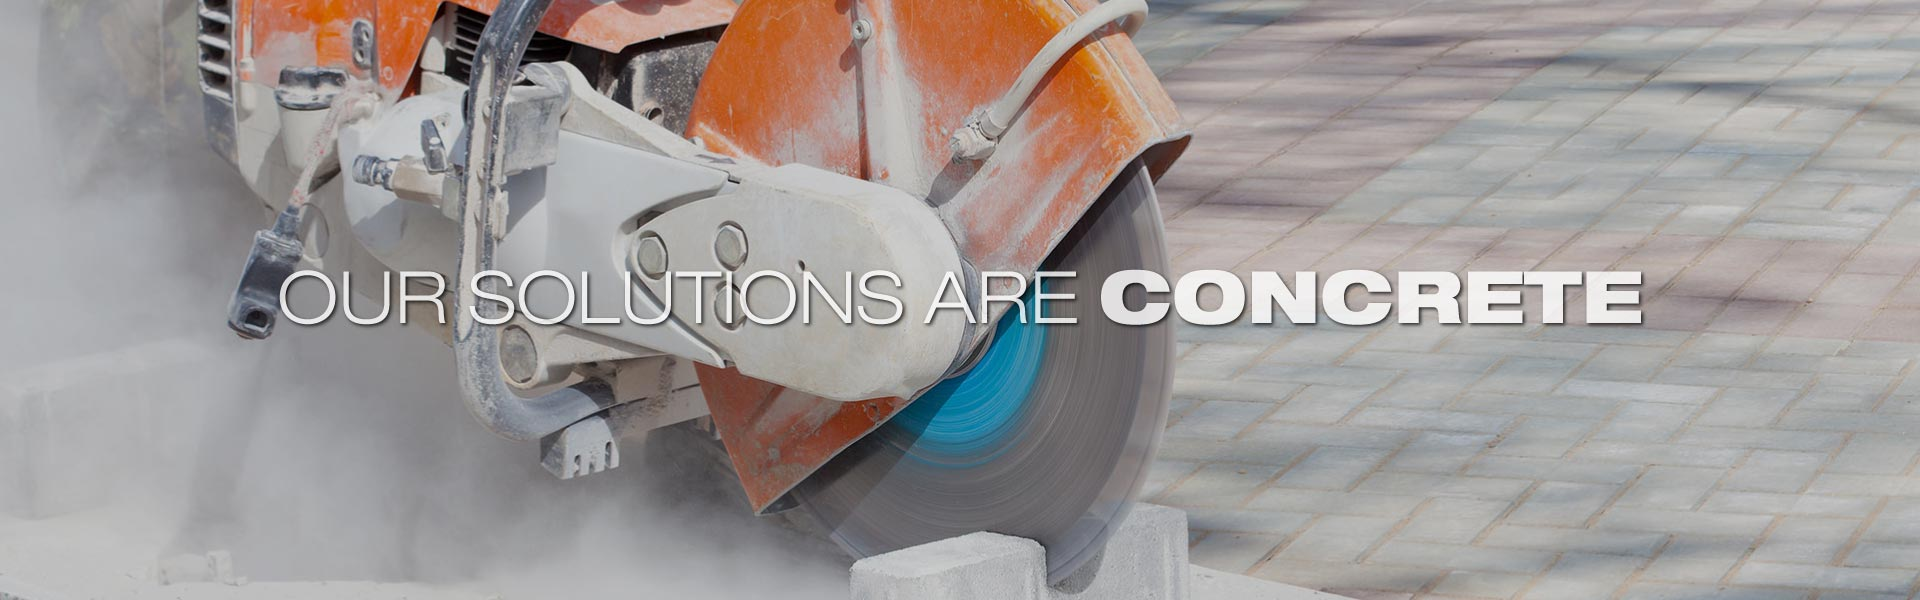 Our Solutions are Concrete | Concrete saw